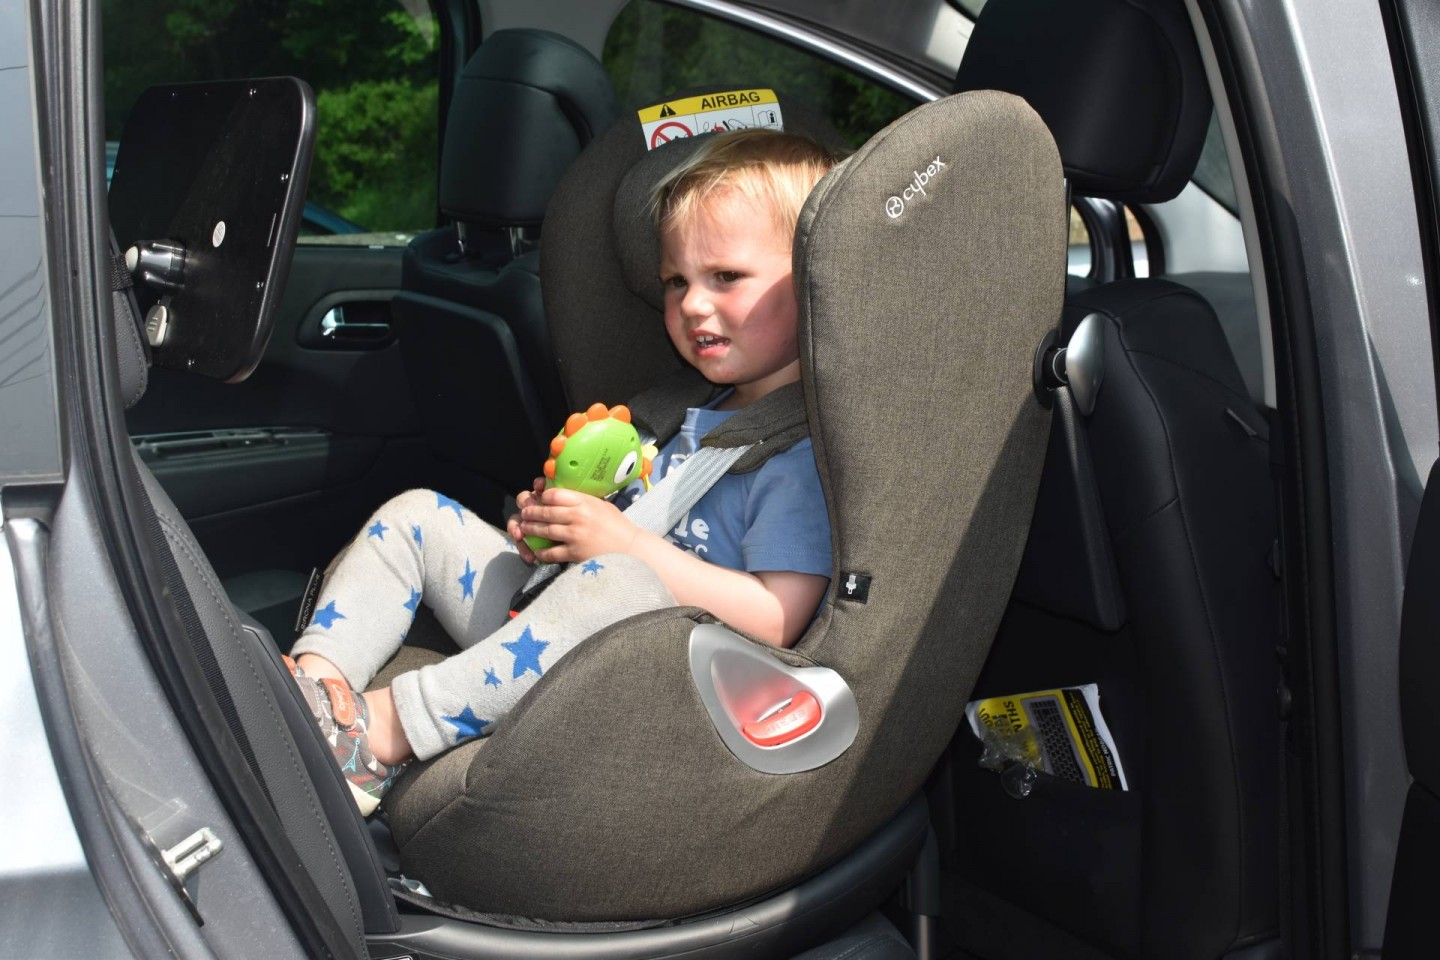 theres so much to consider when travelling safely with your children in the car. heres the latest changes in car seat law